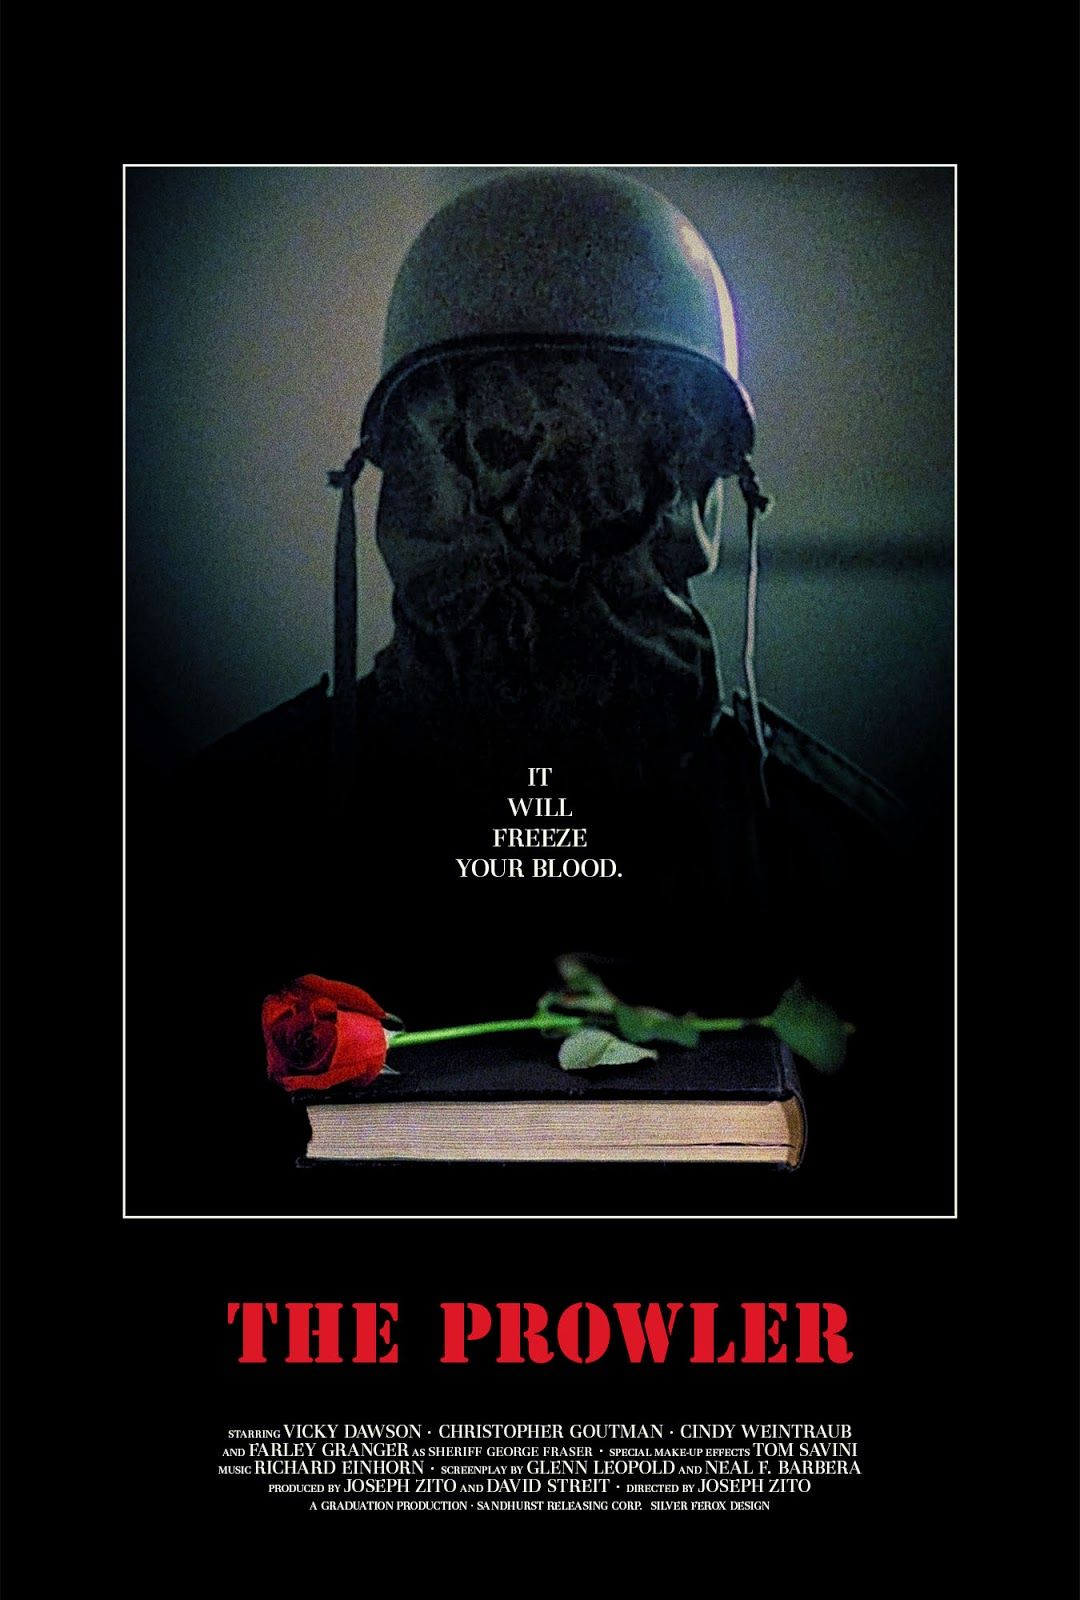 the prowler 1981 full movie download